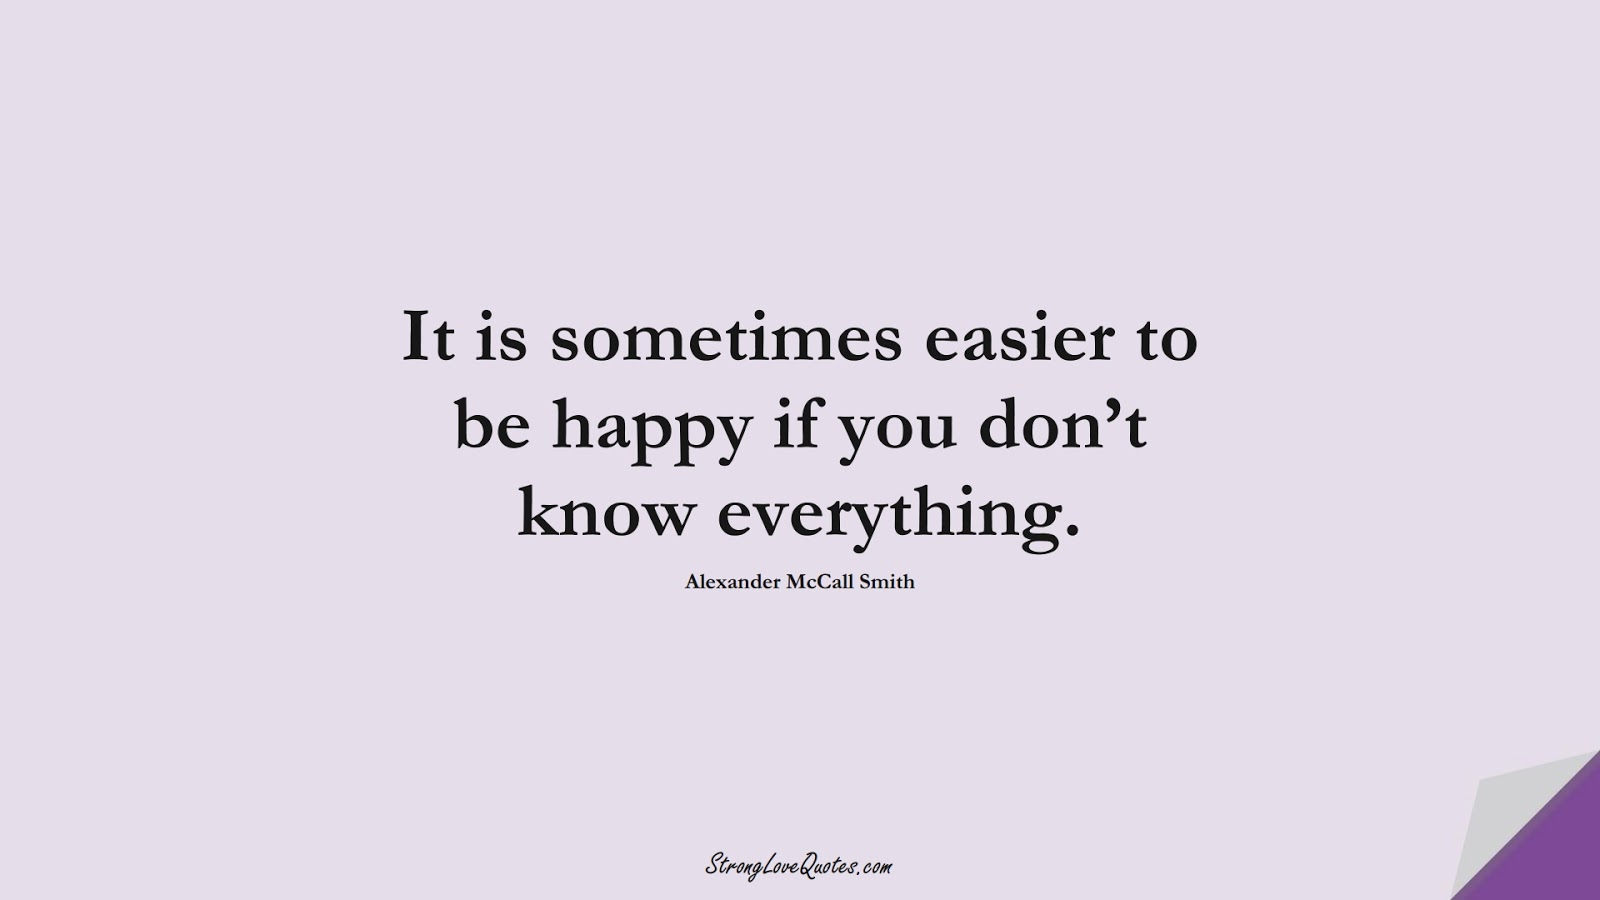 It is sometimes easier to be happy if you don't know everything. (Alexander McCall Smith);  #KnowledgeQuotes